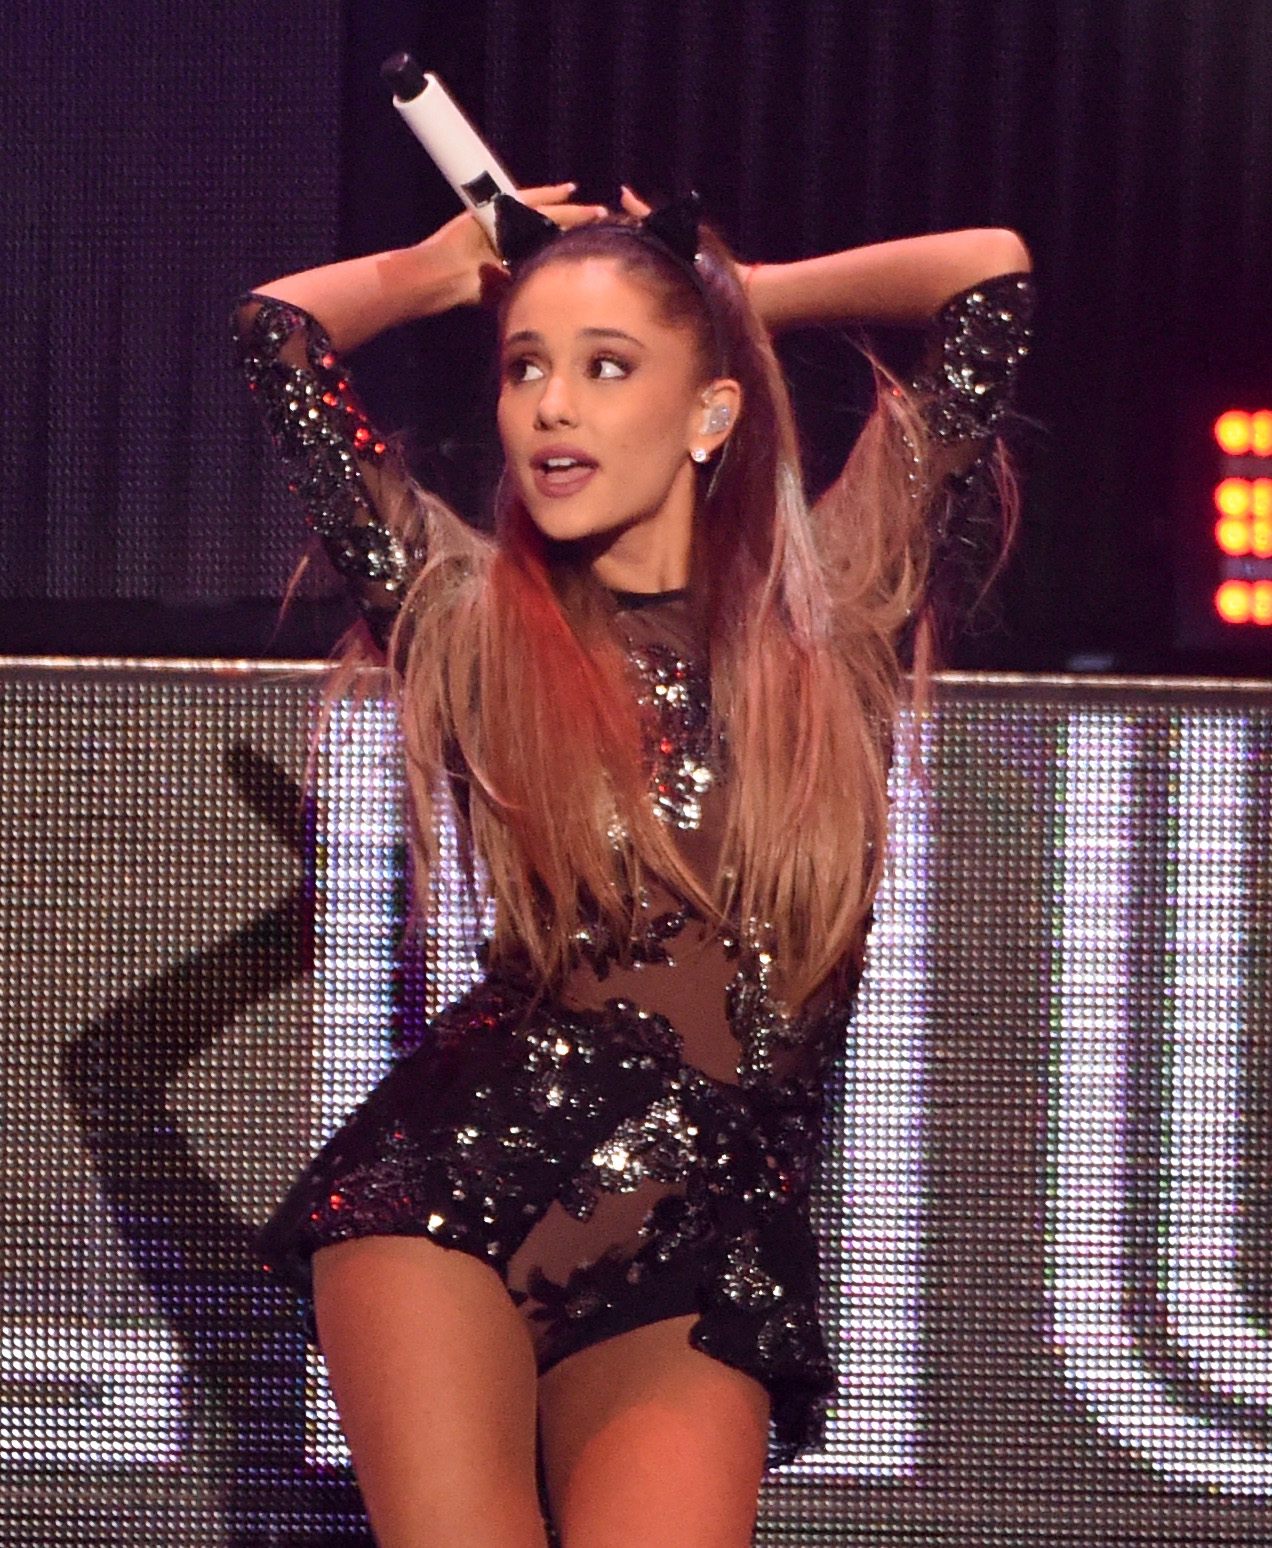 Ariana Grande Shows Her Down Under While Performing Down Under naked (99 images)